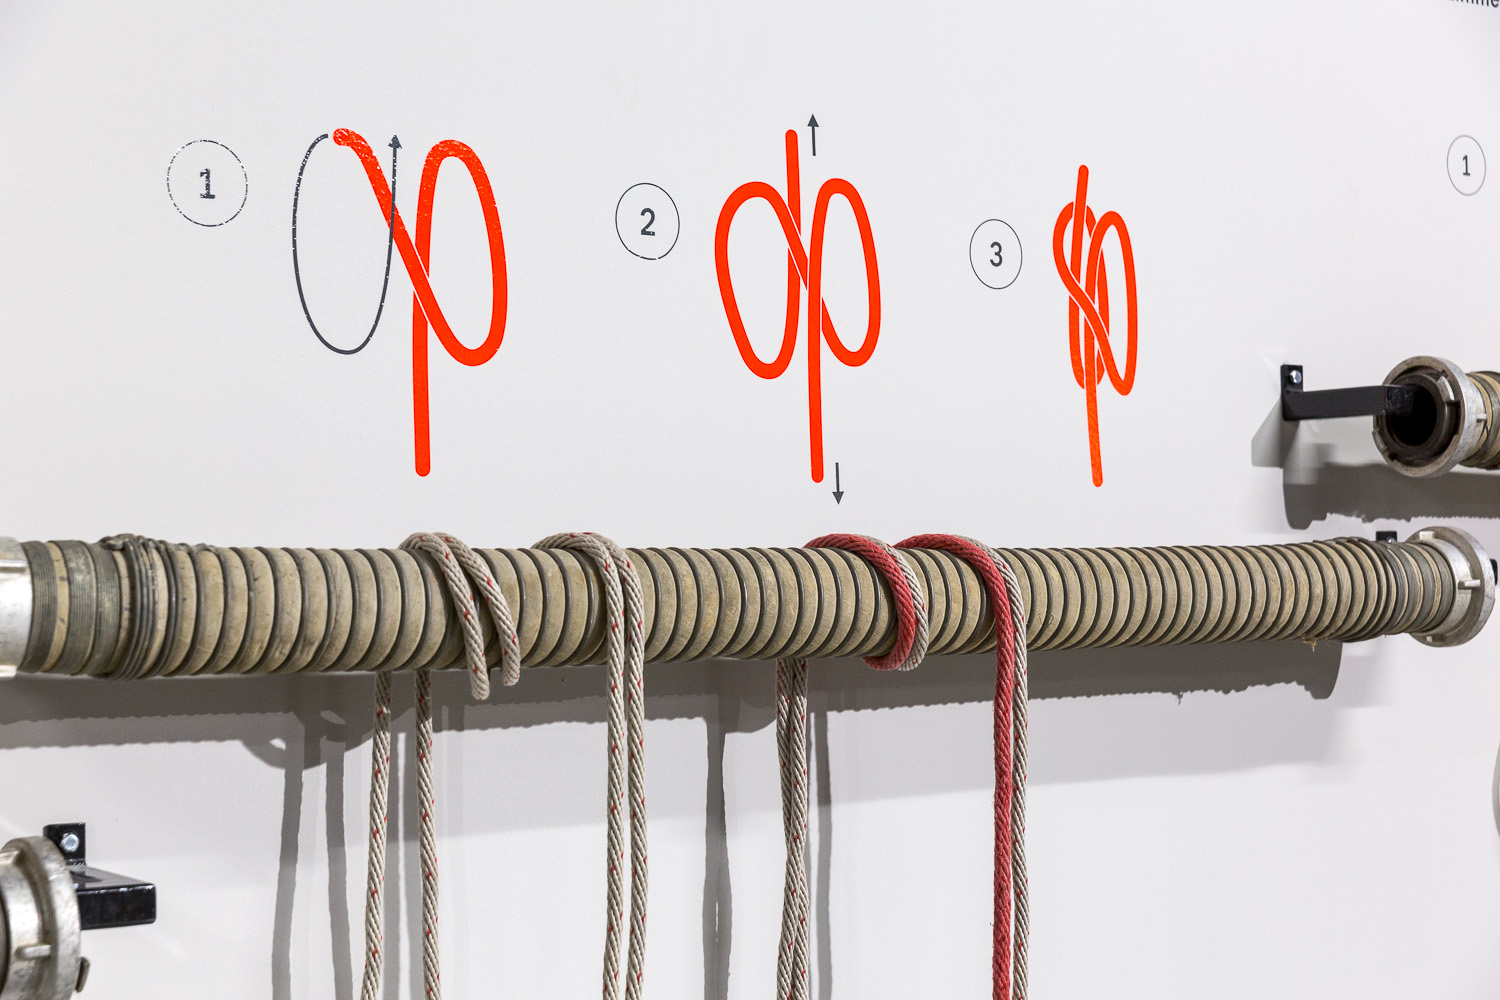 Ropes hang from wall bracket. A simple graphic above shows how to tie a knot